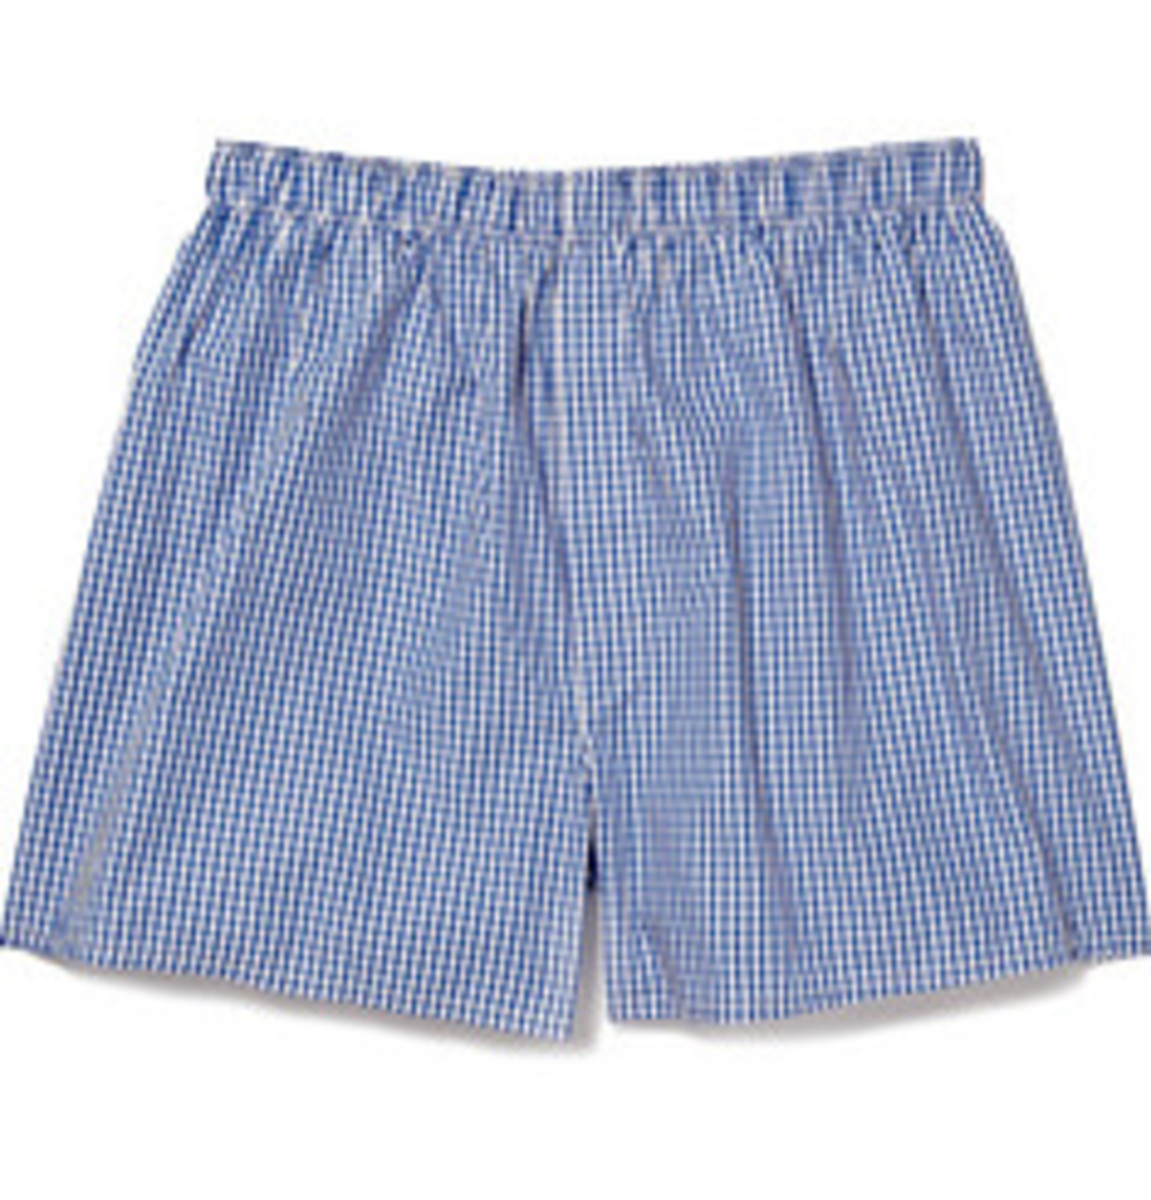 $95 GINGHAM CHECK COTTON BOXER SHORTS